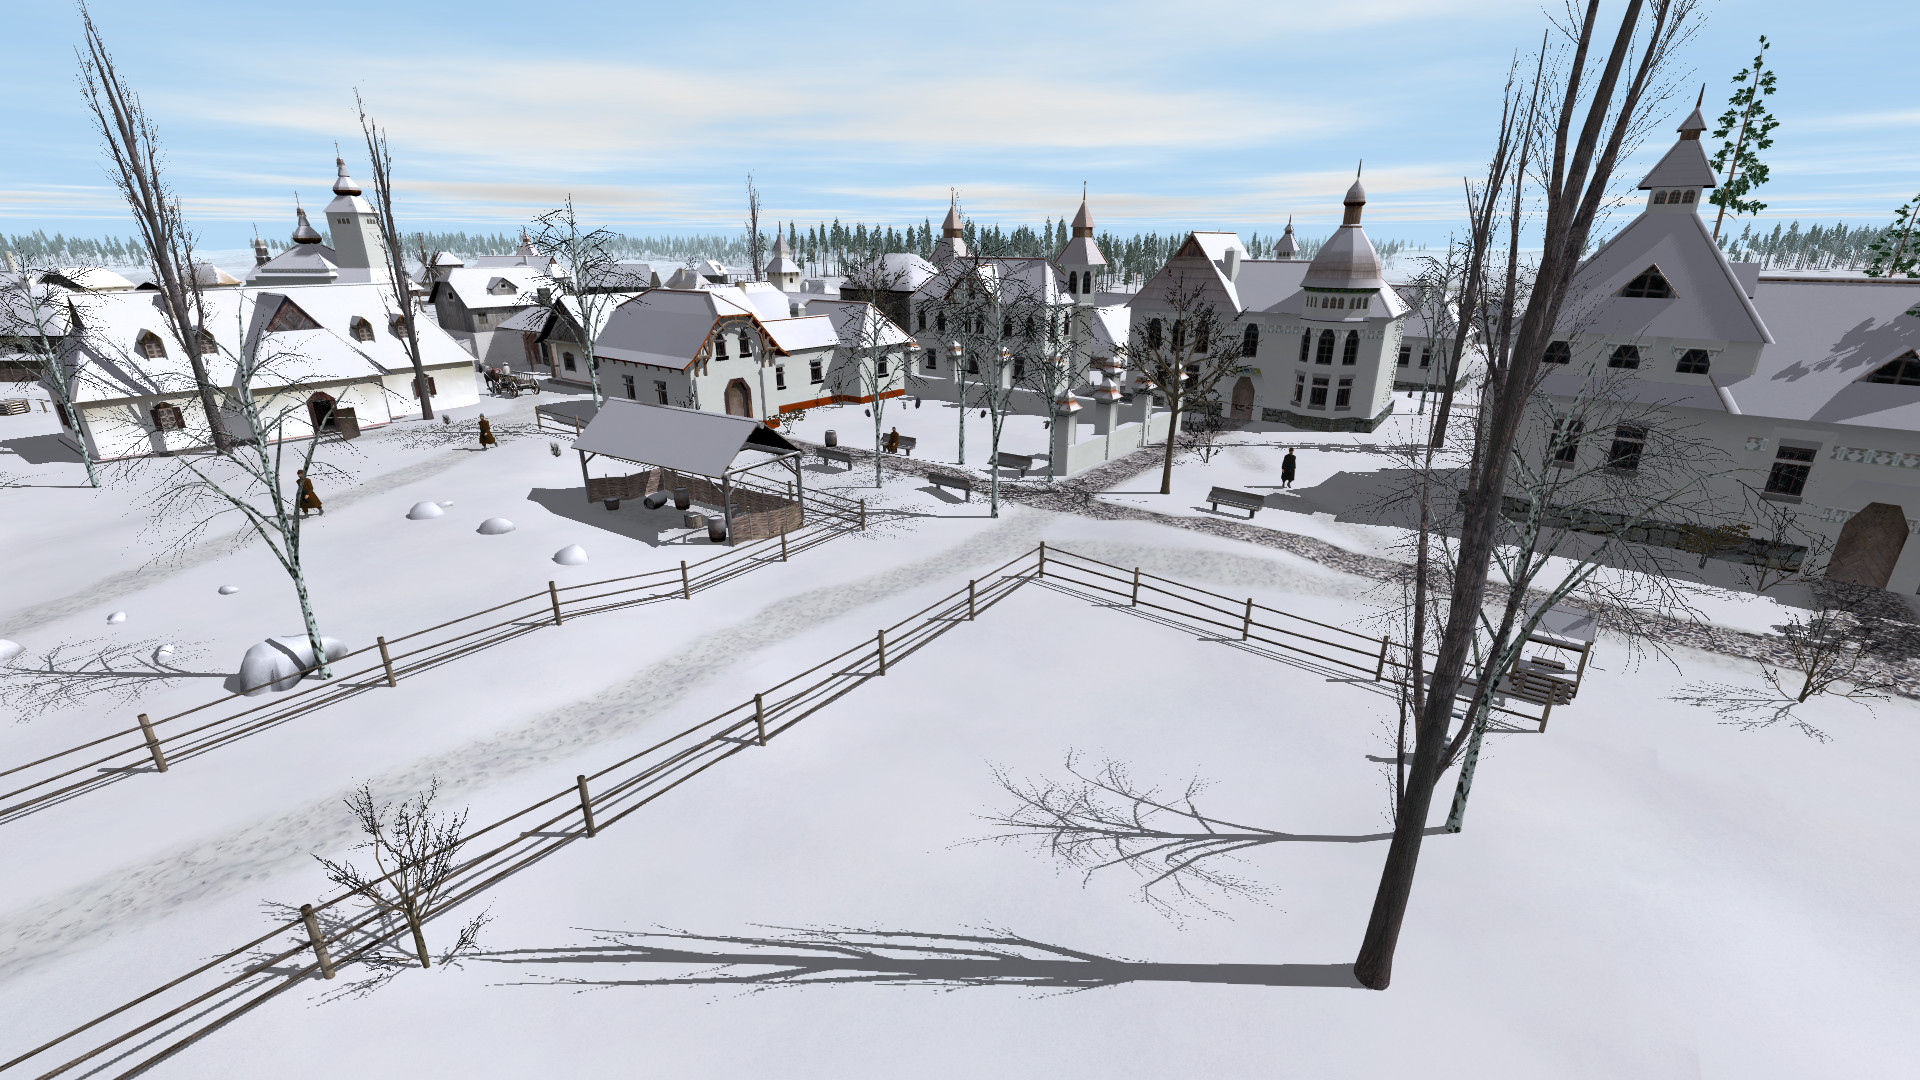 ostriv a city building game image indie db